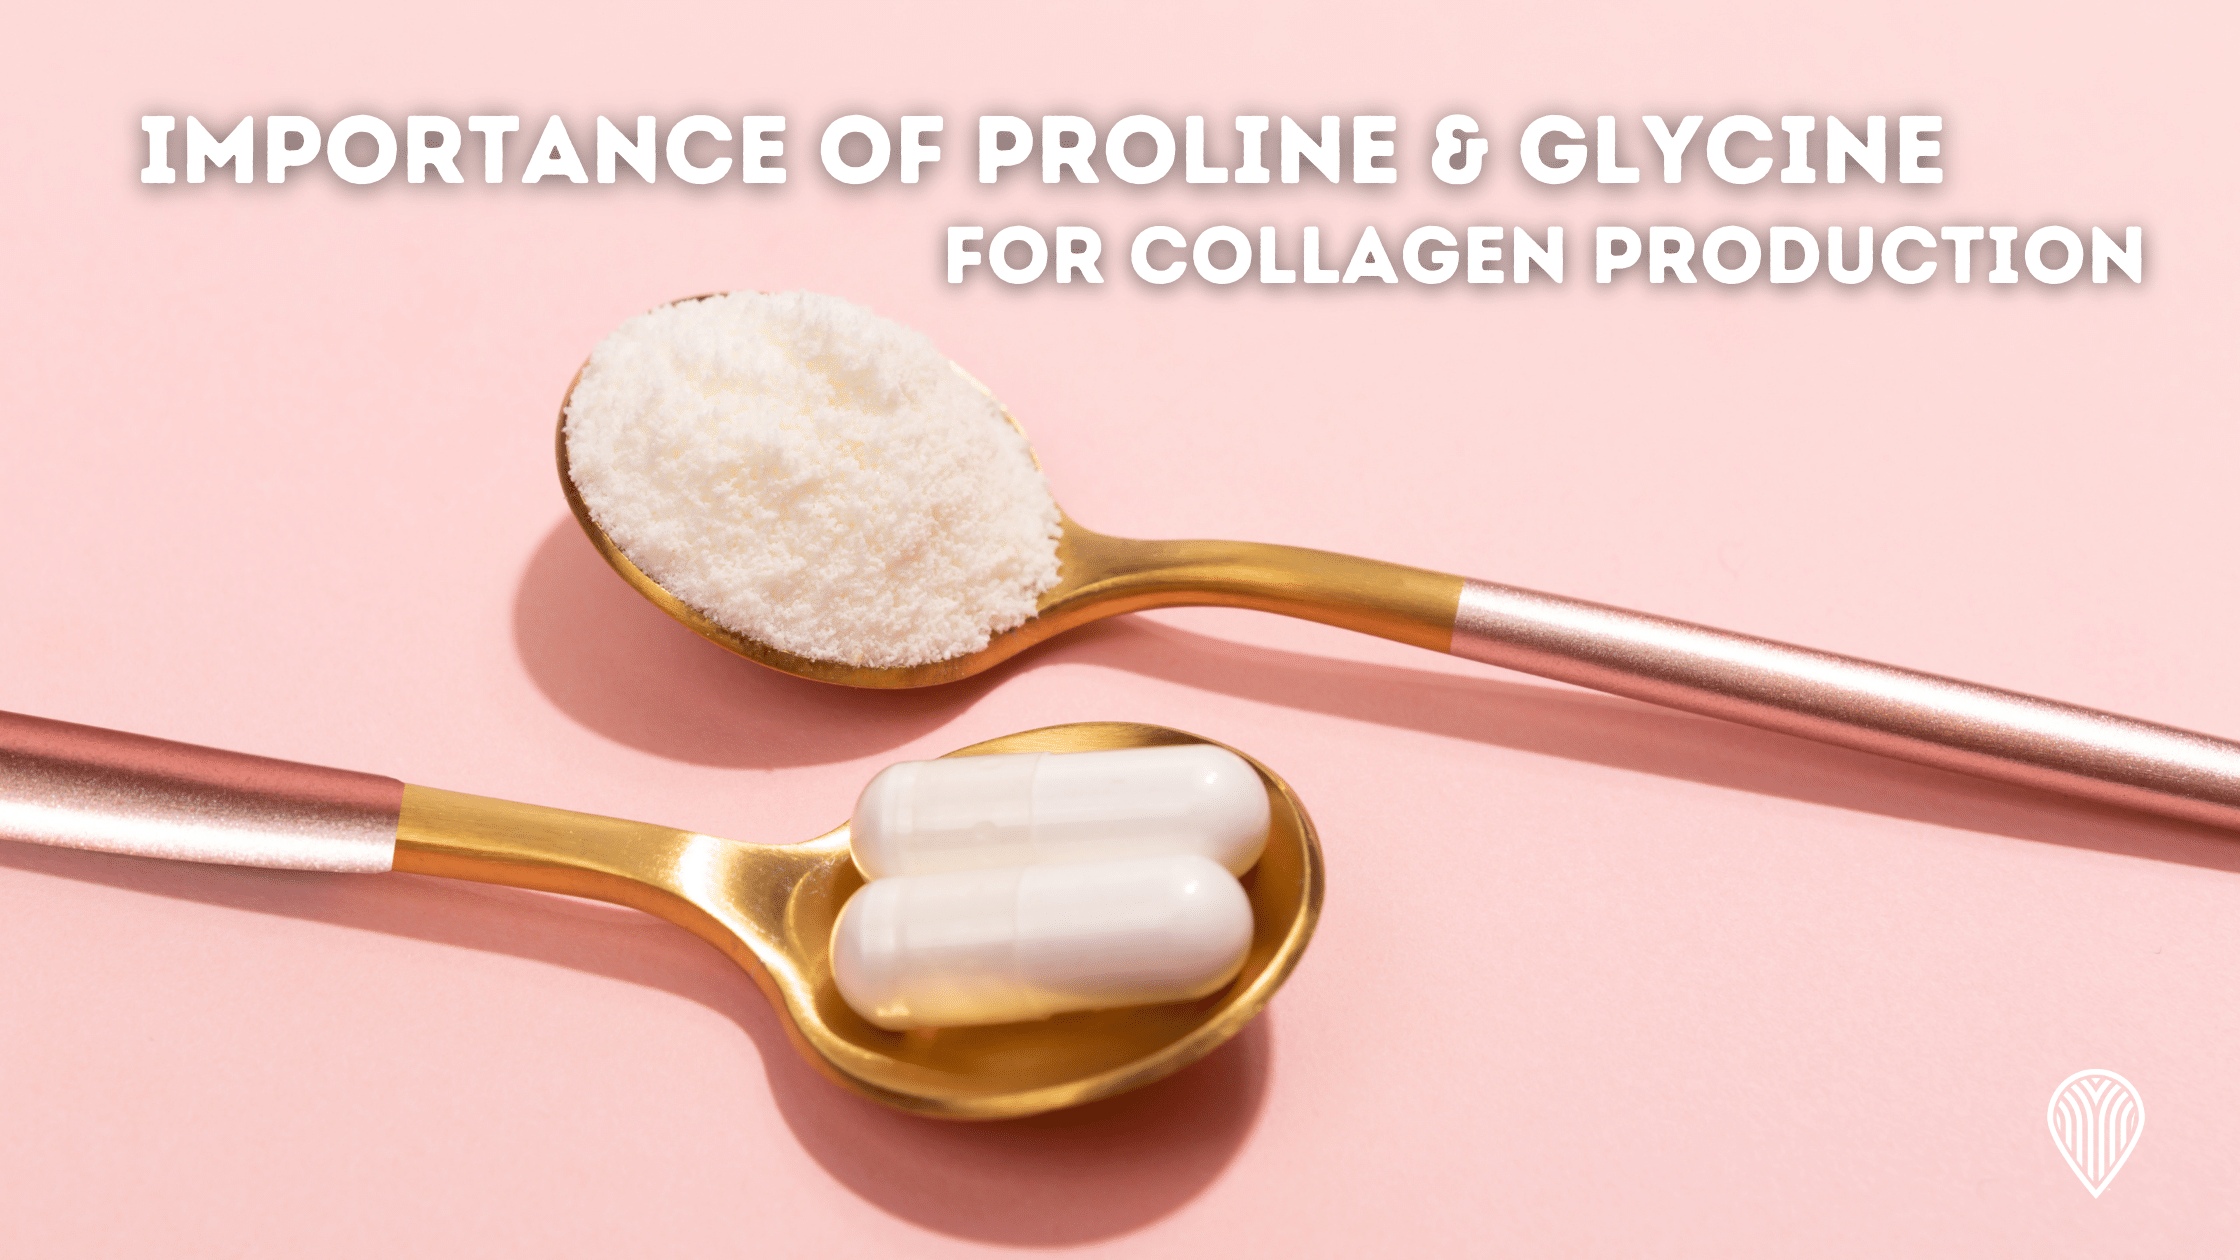 Importance of proline & glycine for collagen production